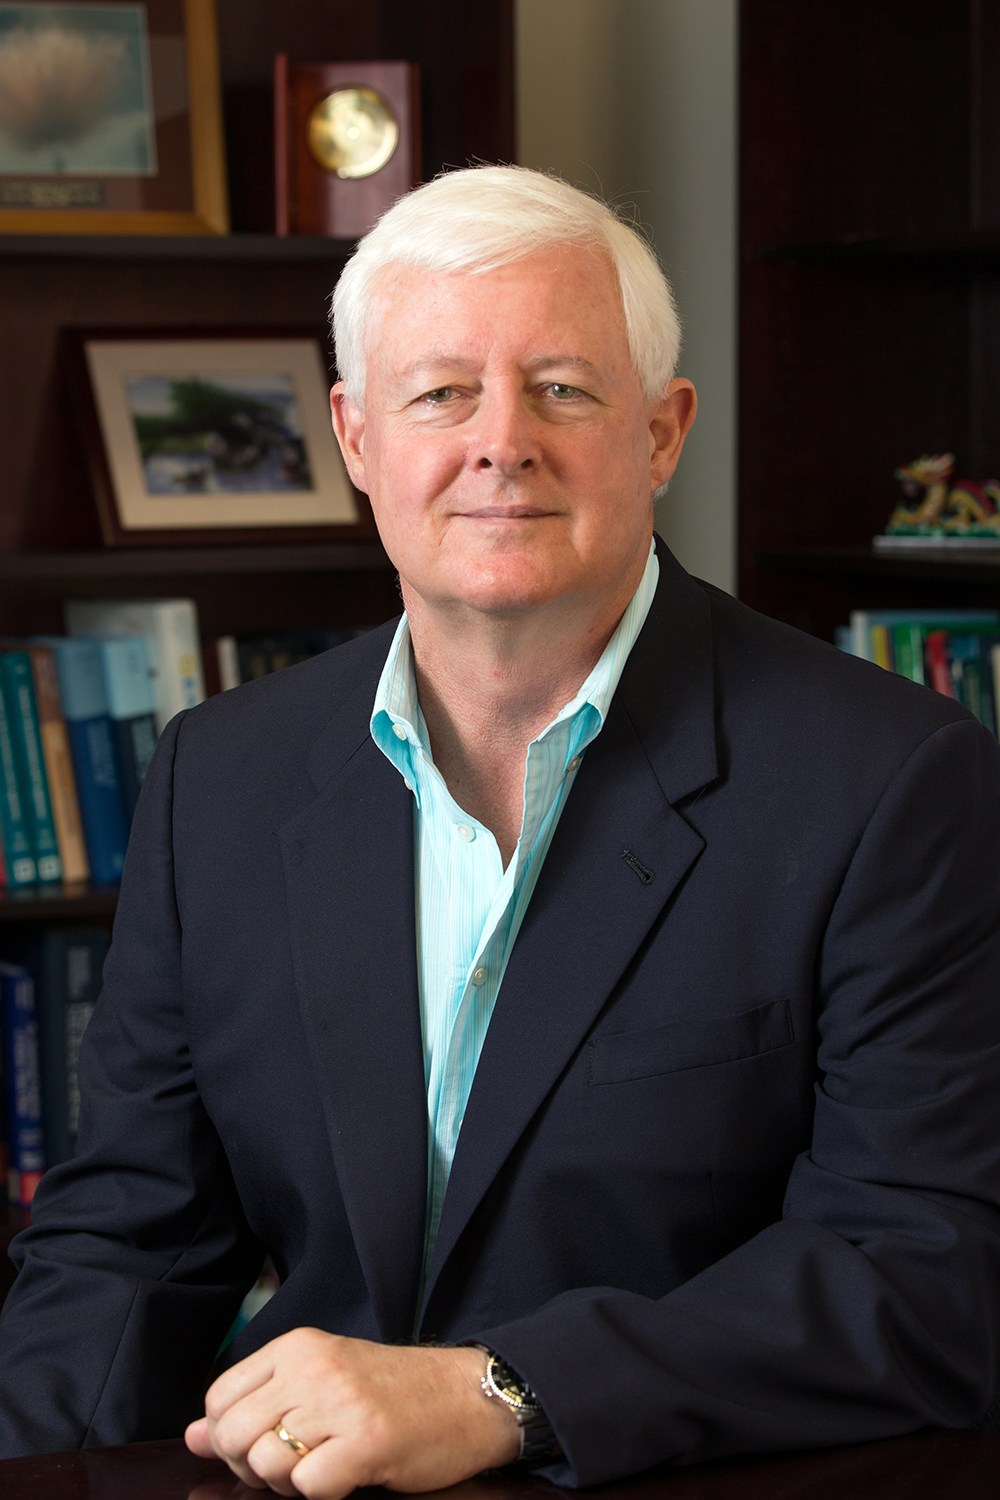 Dr. Valen E. Johnson, University Distinguished Professor of Statistics and head of the Department of Statistics , has been appointed as Interim Dean of the College of Science. (Texas A&M University College of Science)